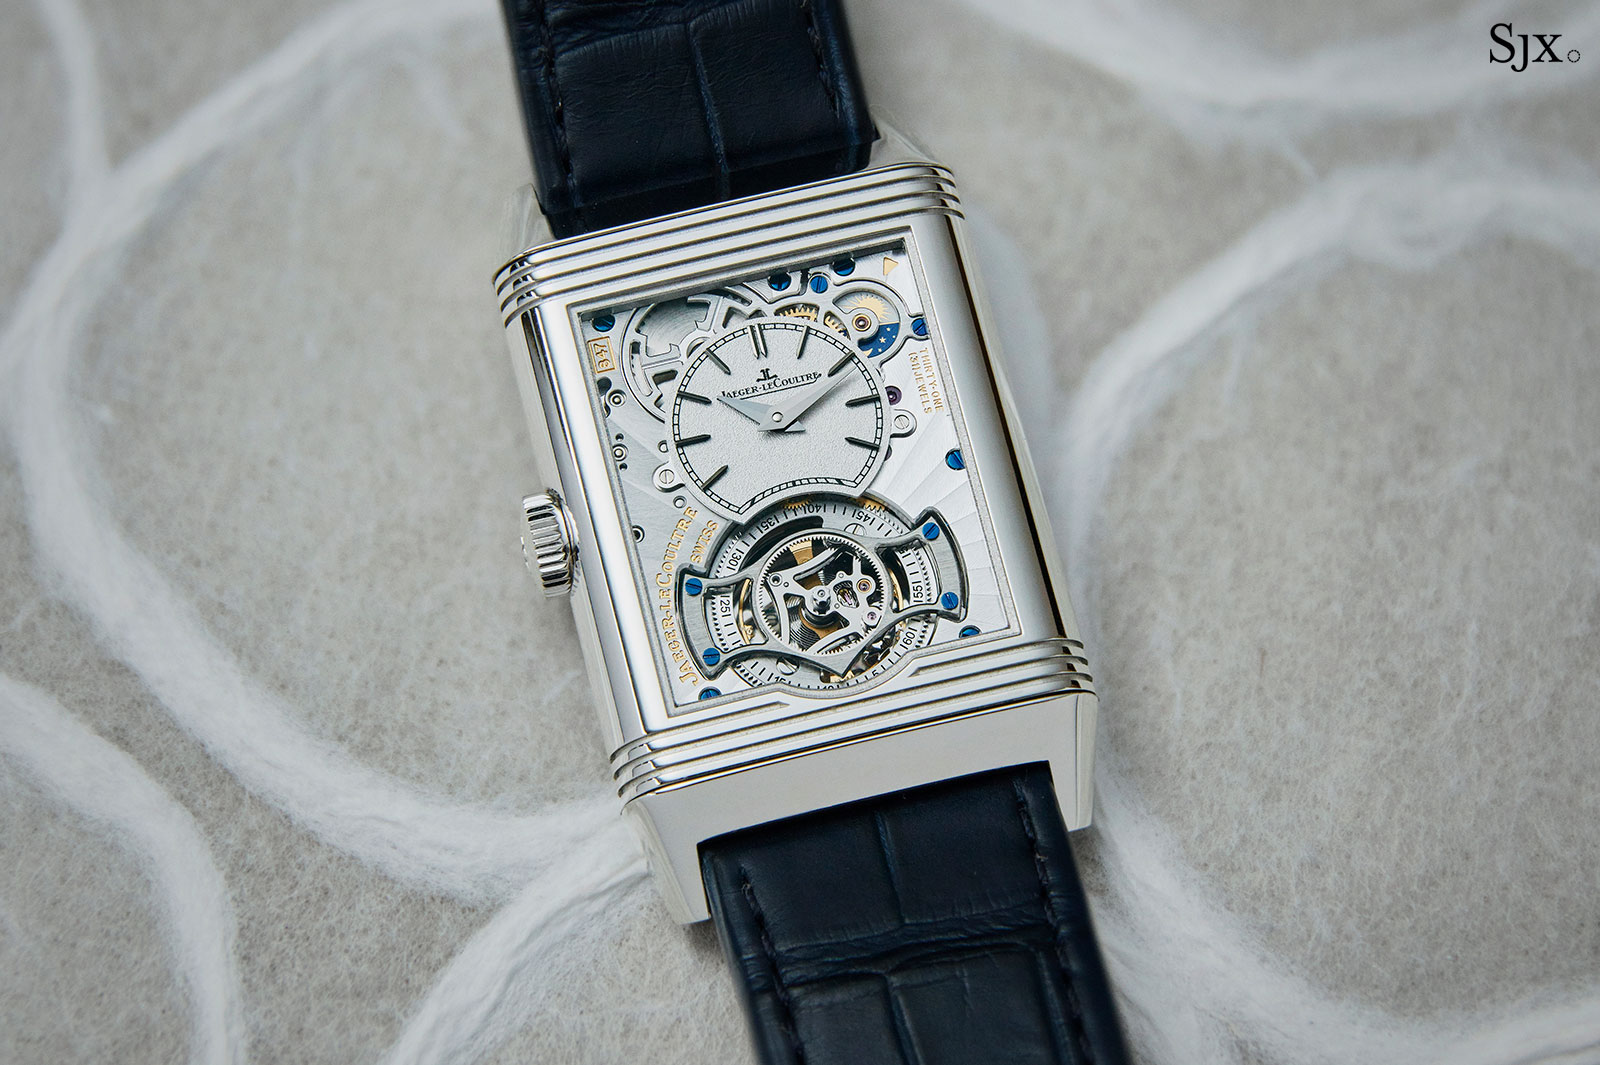 JaegerLeCoultre Reverso Tribute Flying Tourbillon 1